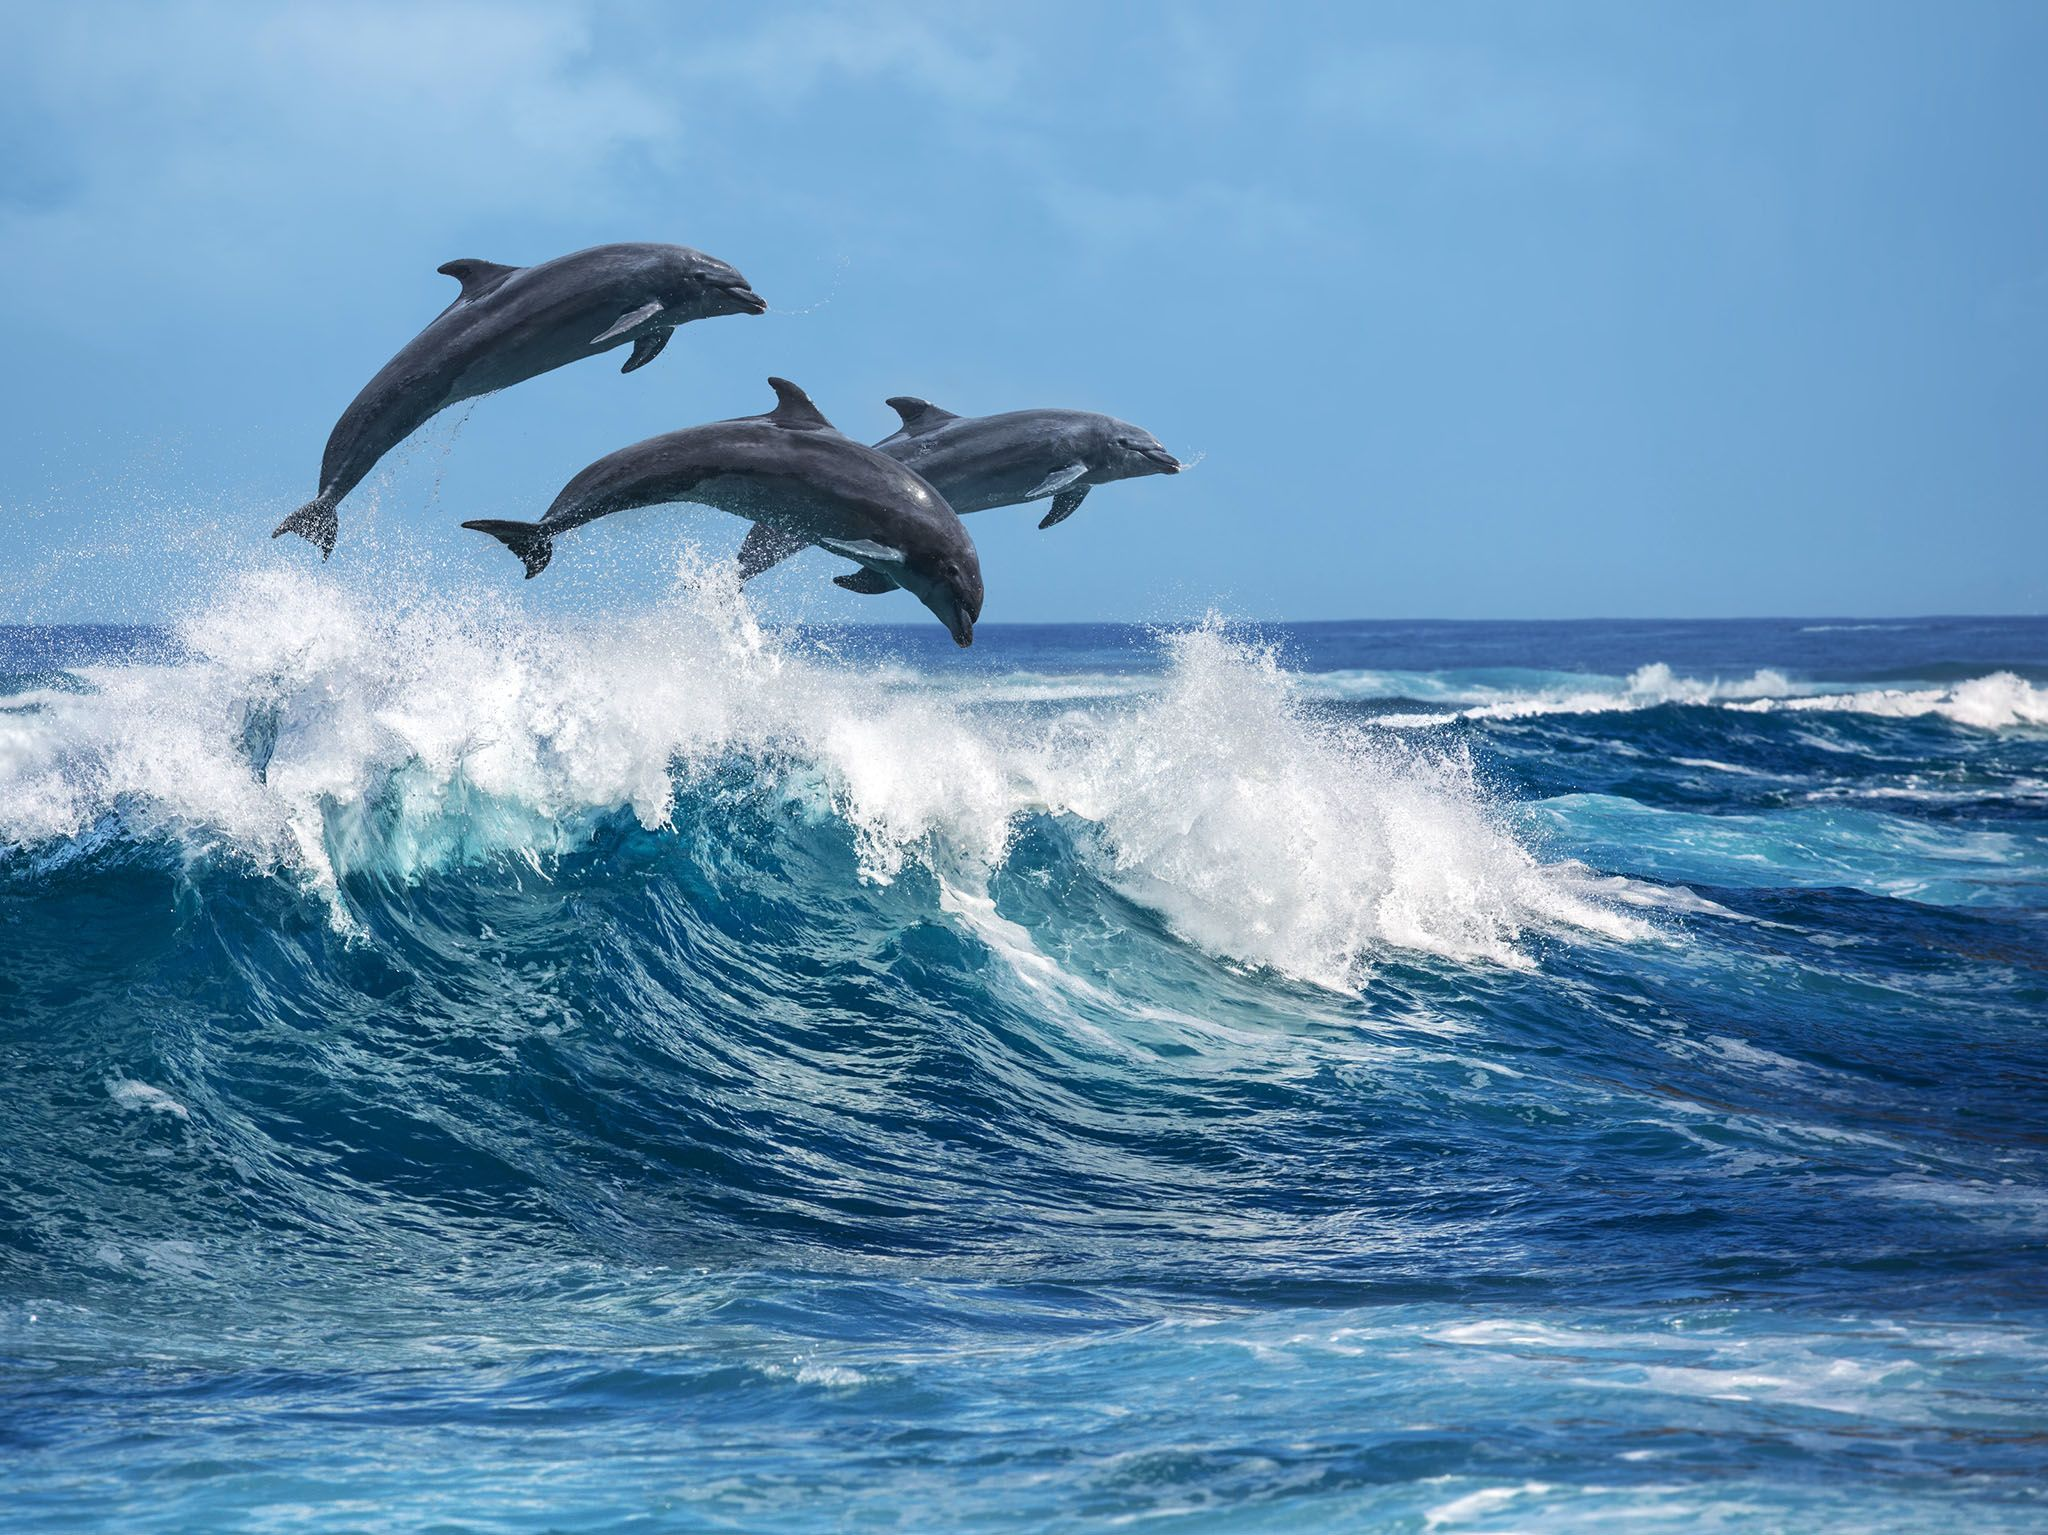 Hawaii: Three beautiful dolphins jumping over breaking waves. Hawaii Pacific Ocean wildlife... [Photo of the day - مارس 2017]